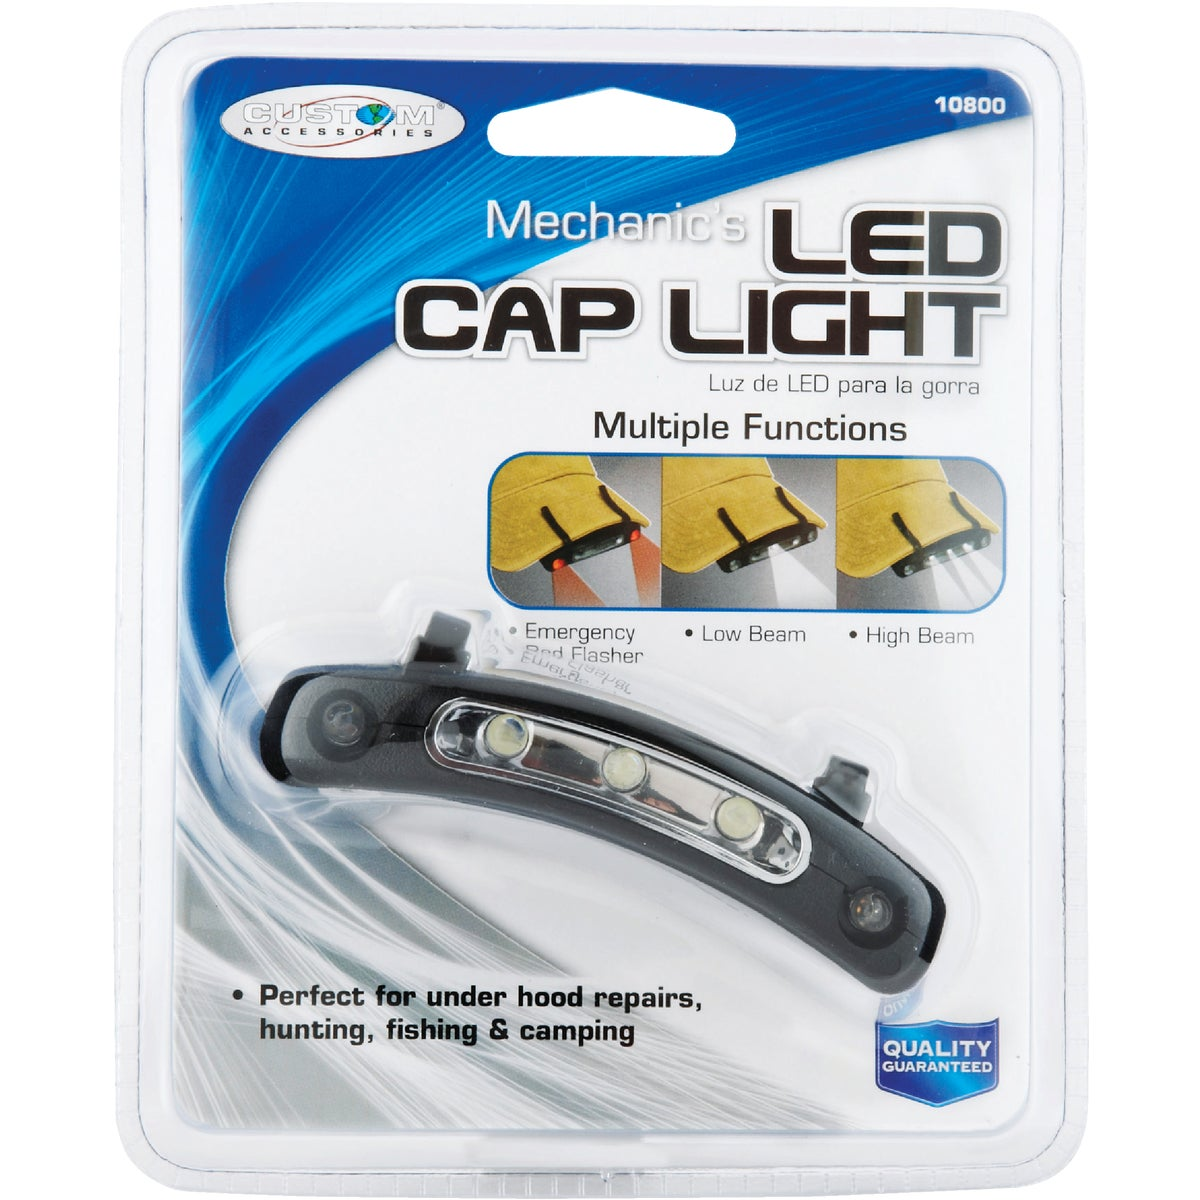 MECHANICS LED CAP LIGHT - 10800 by Custom Accessories